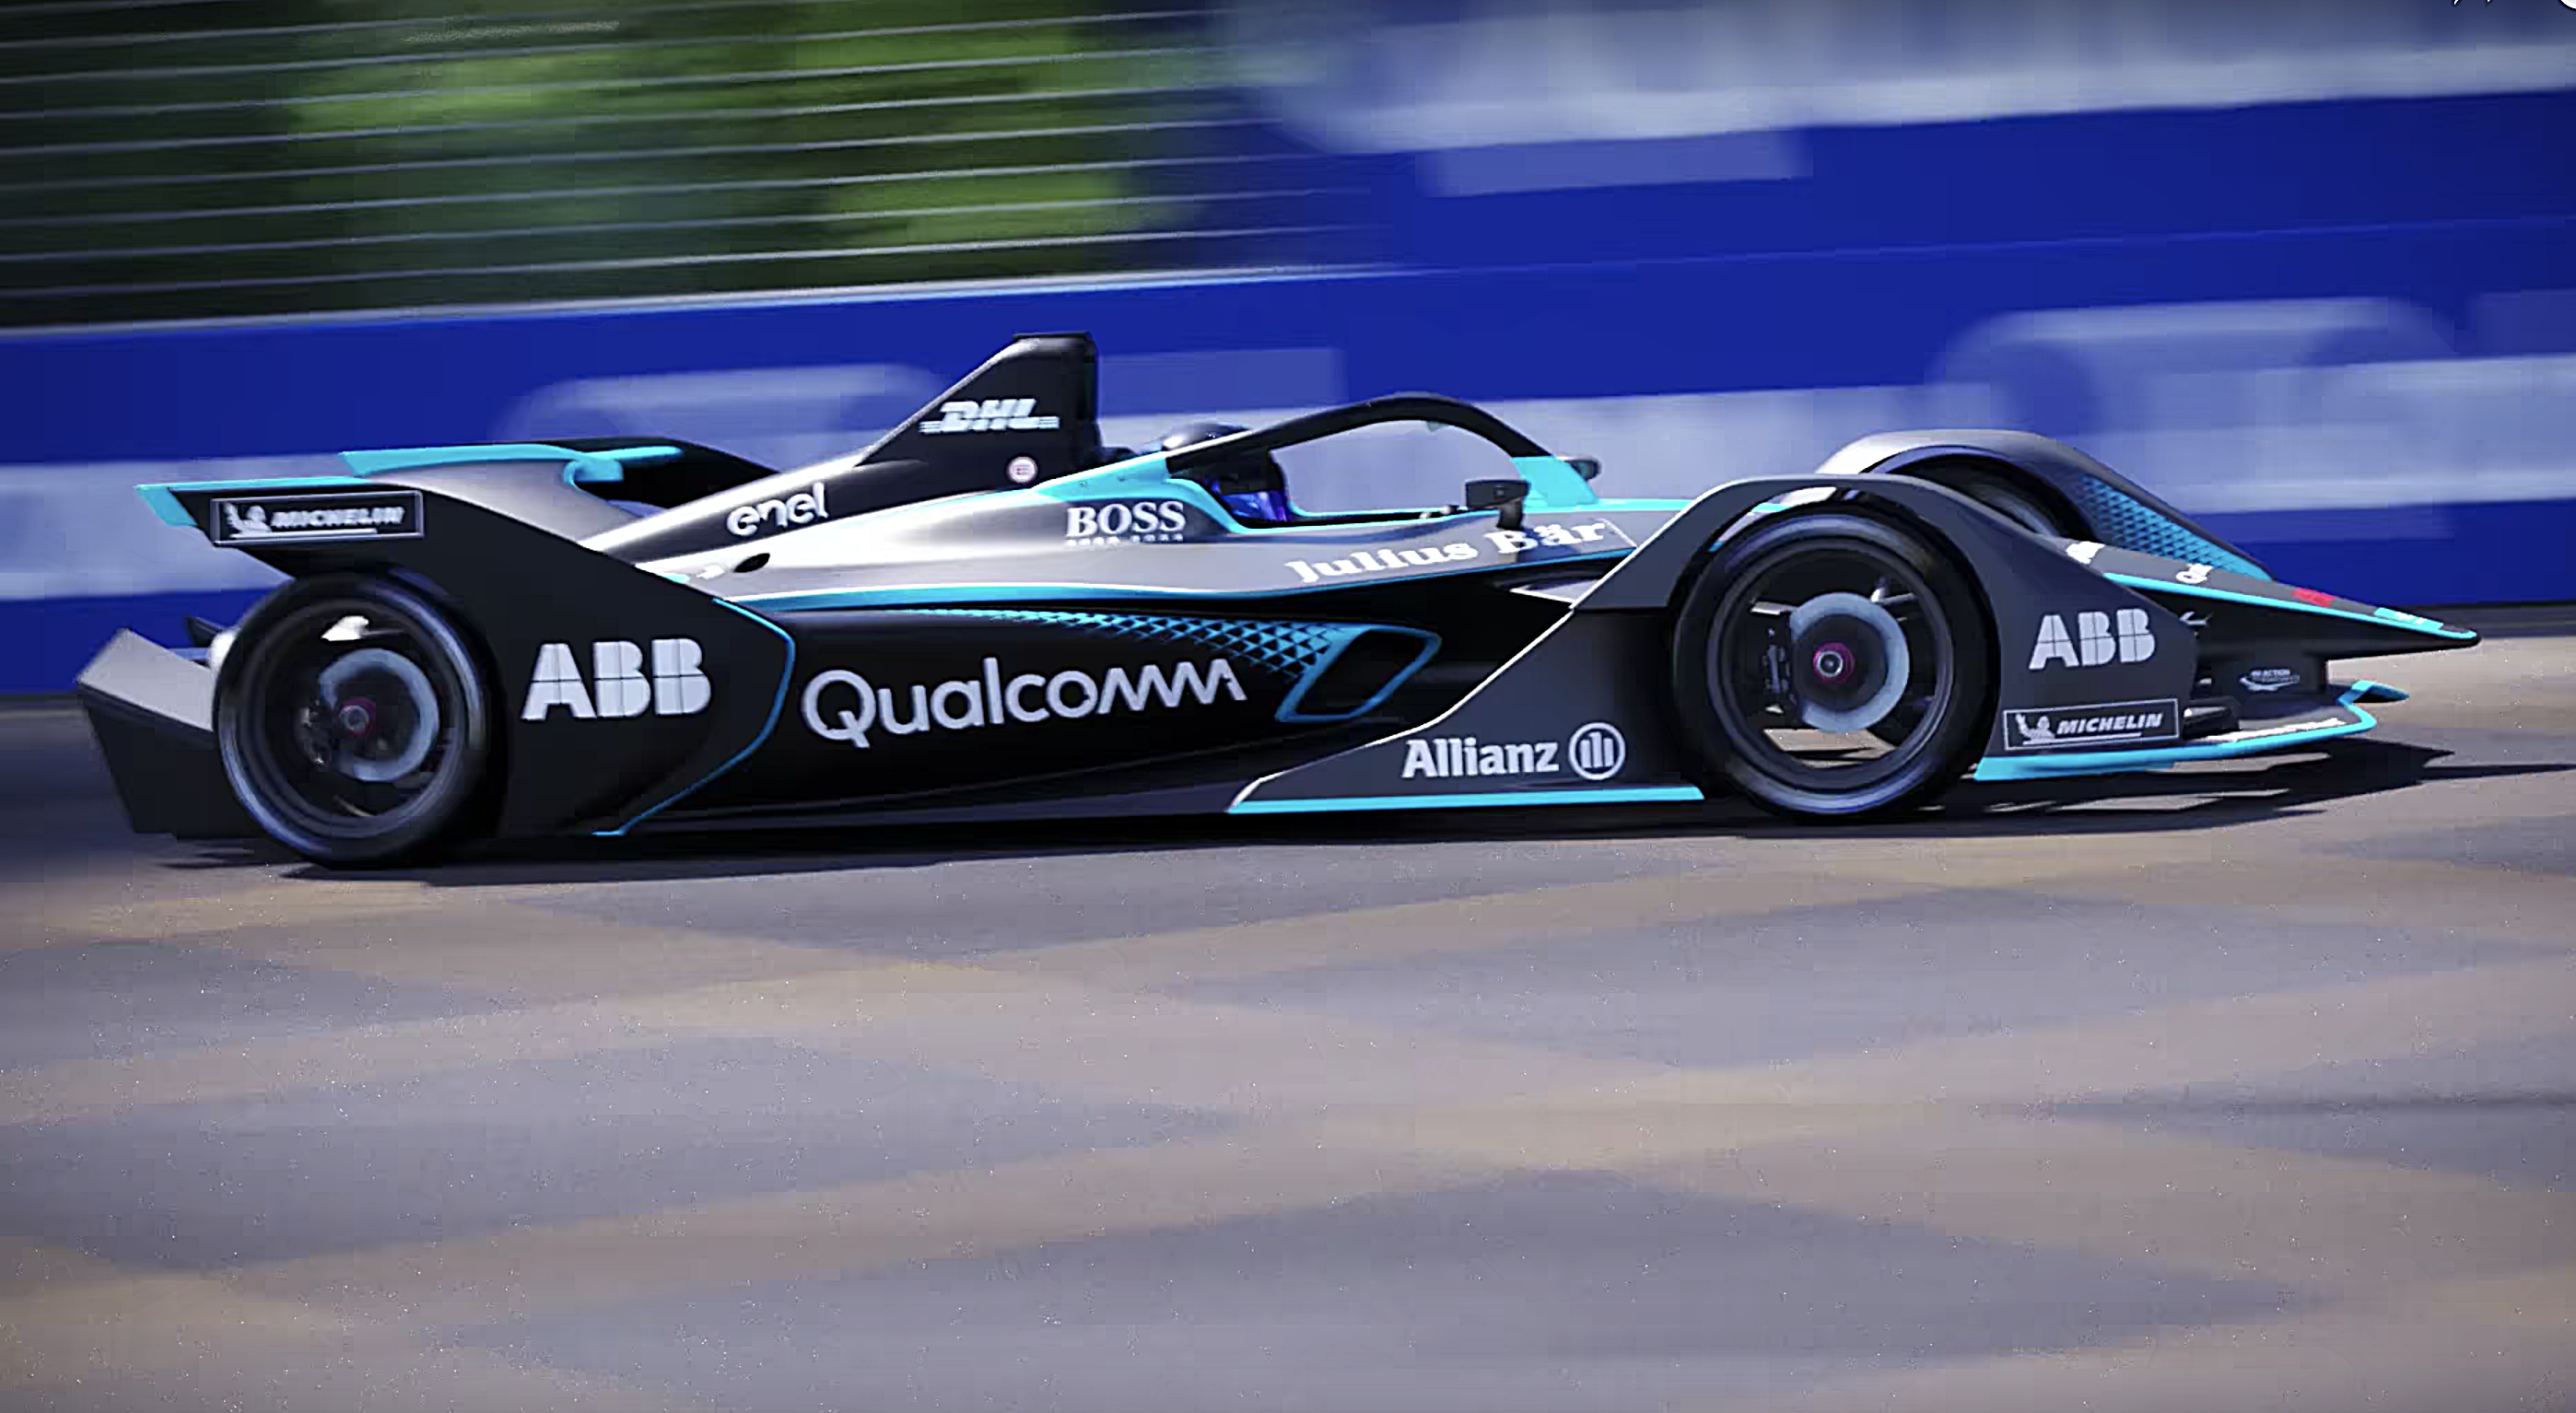 Formula E S New All Electric Racecars Look Like They Flew Here From The Future Verge